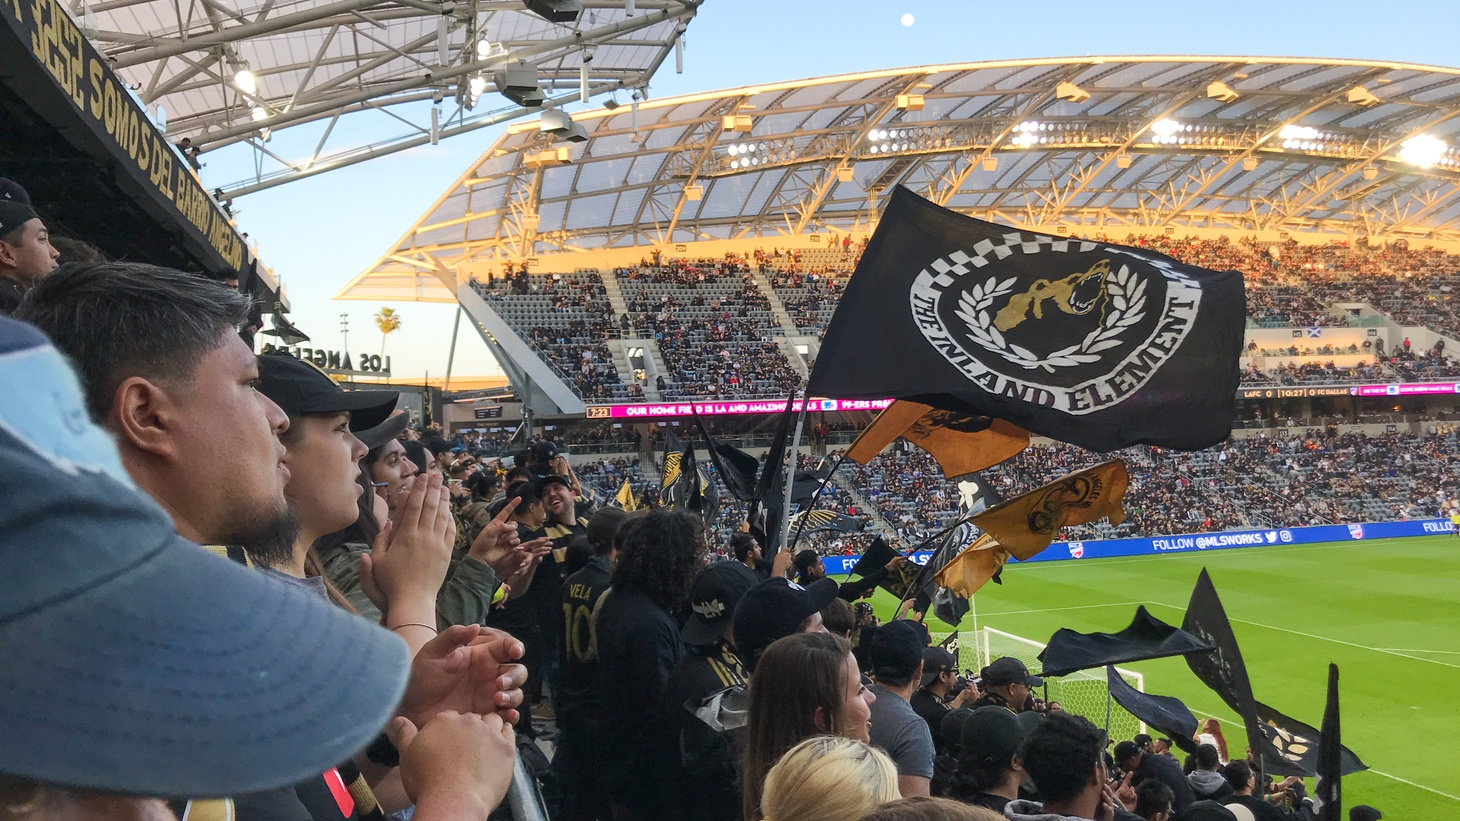 Spectators at a recent LAFC game.